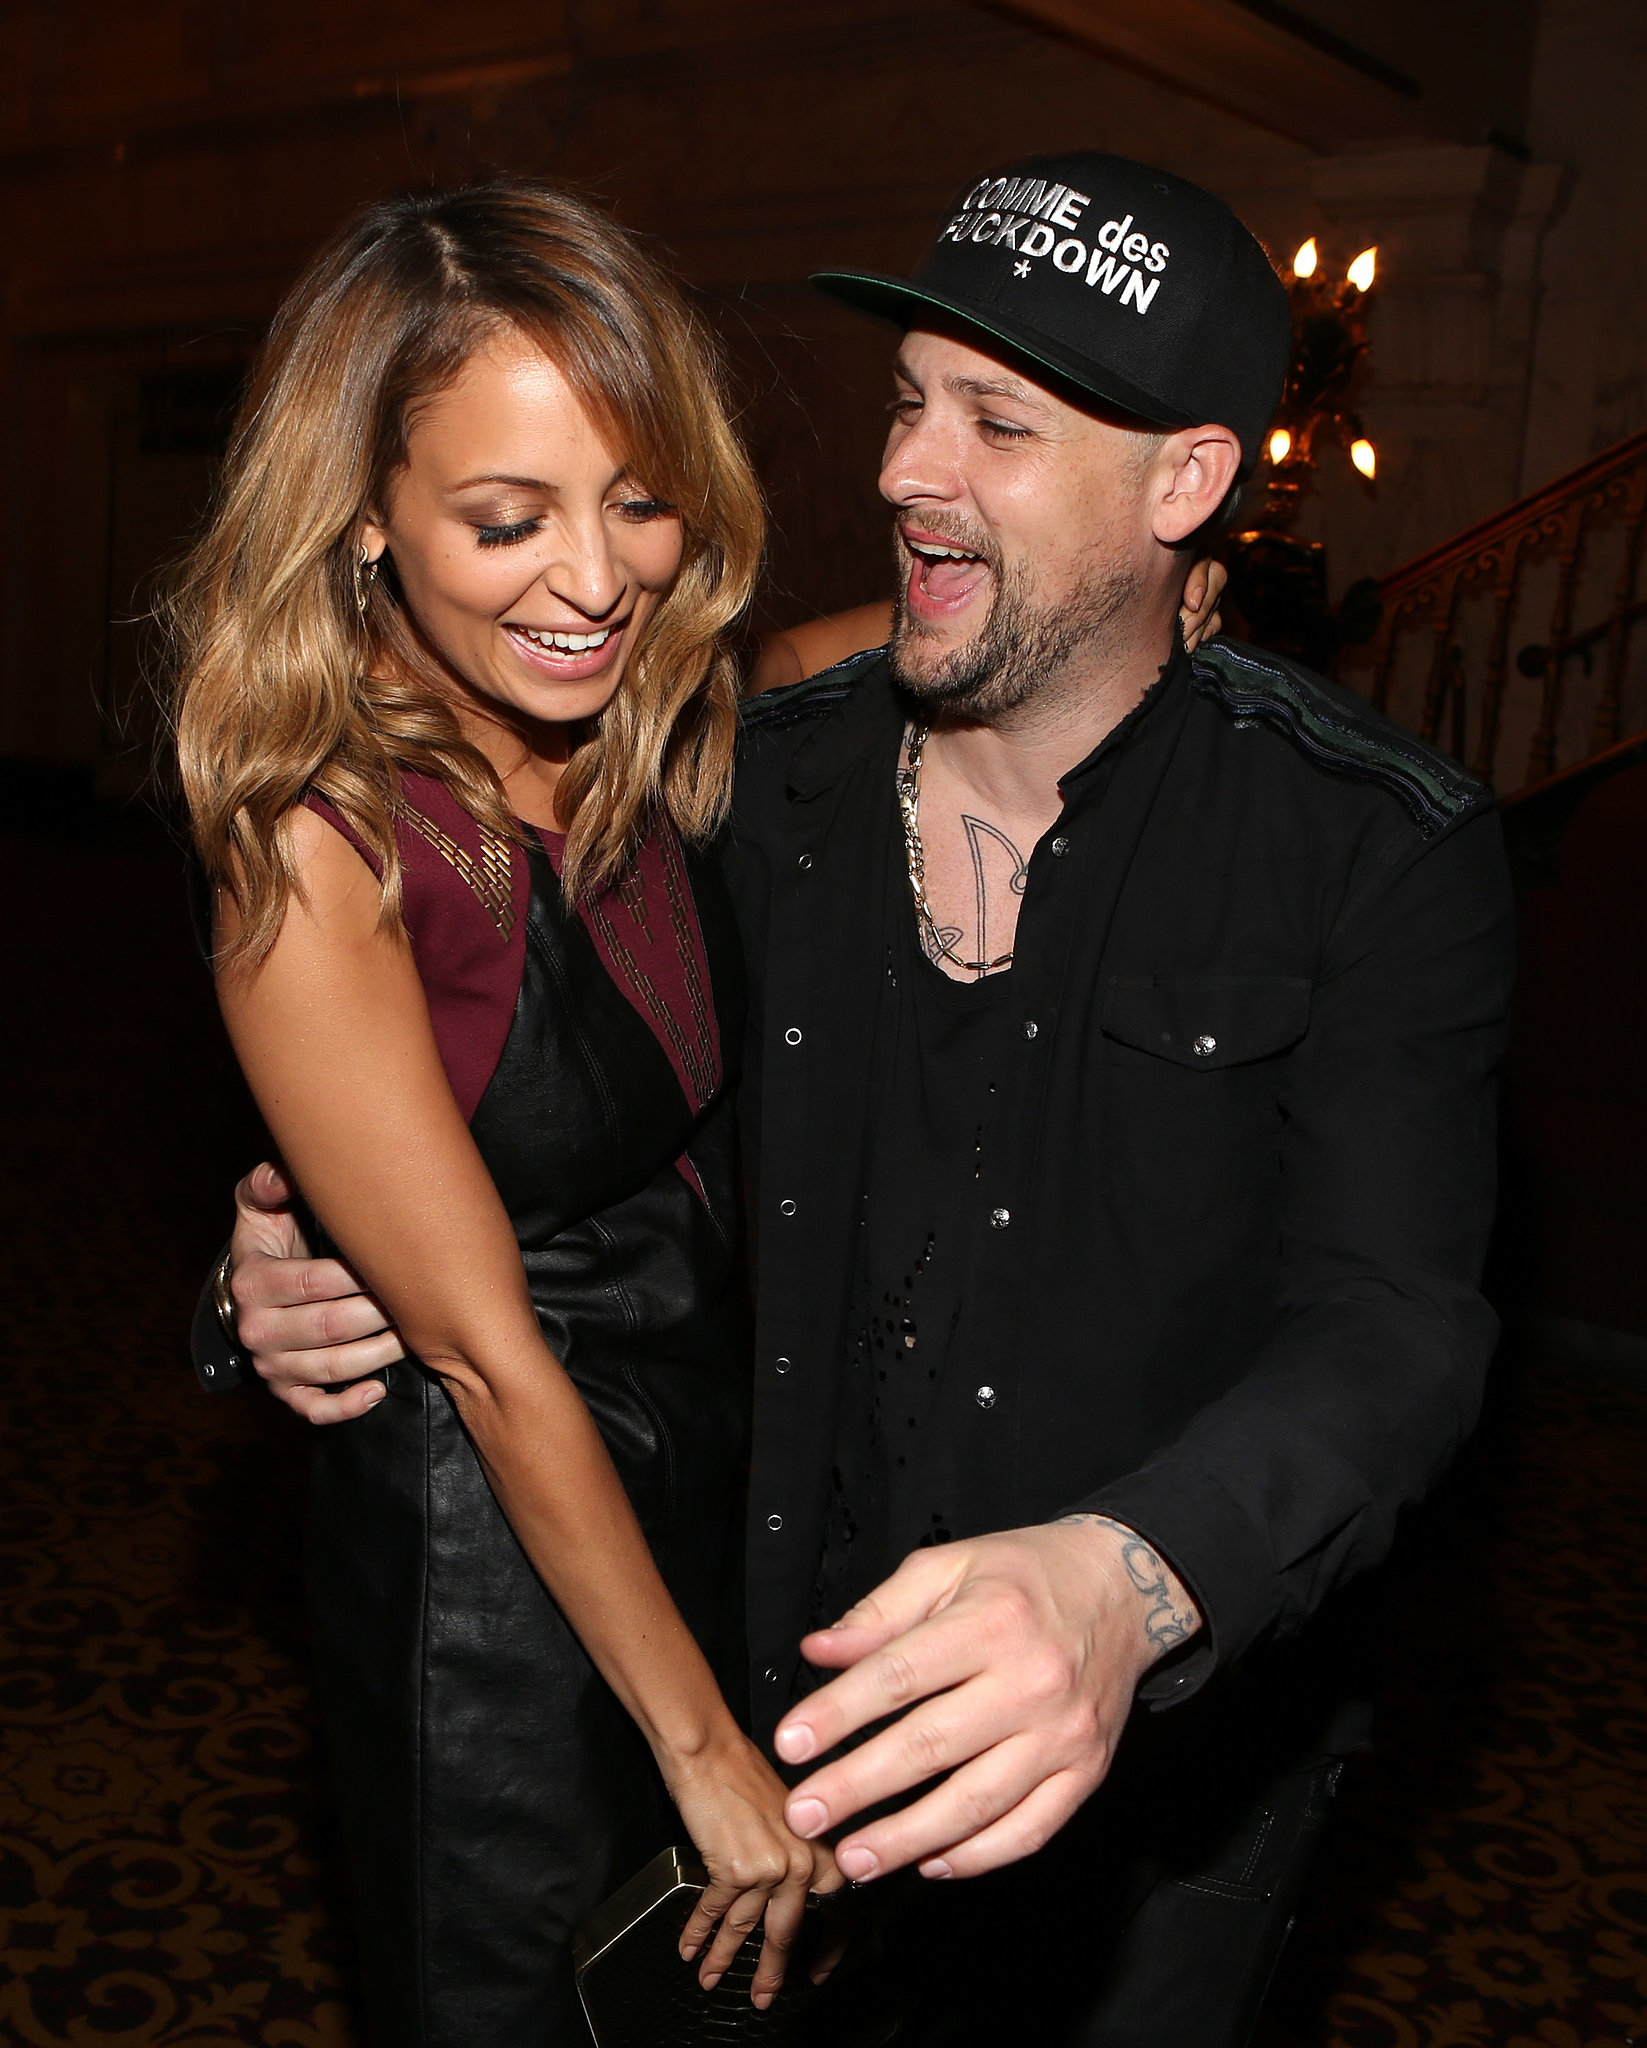 She and Joel made the most of their night out during an LA Macy's event in September 2012.